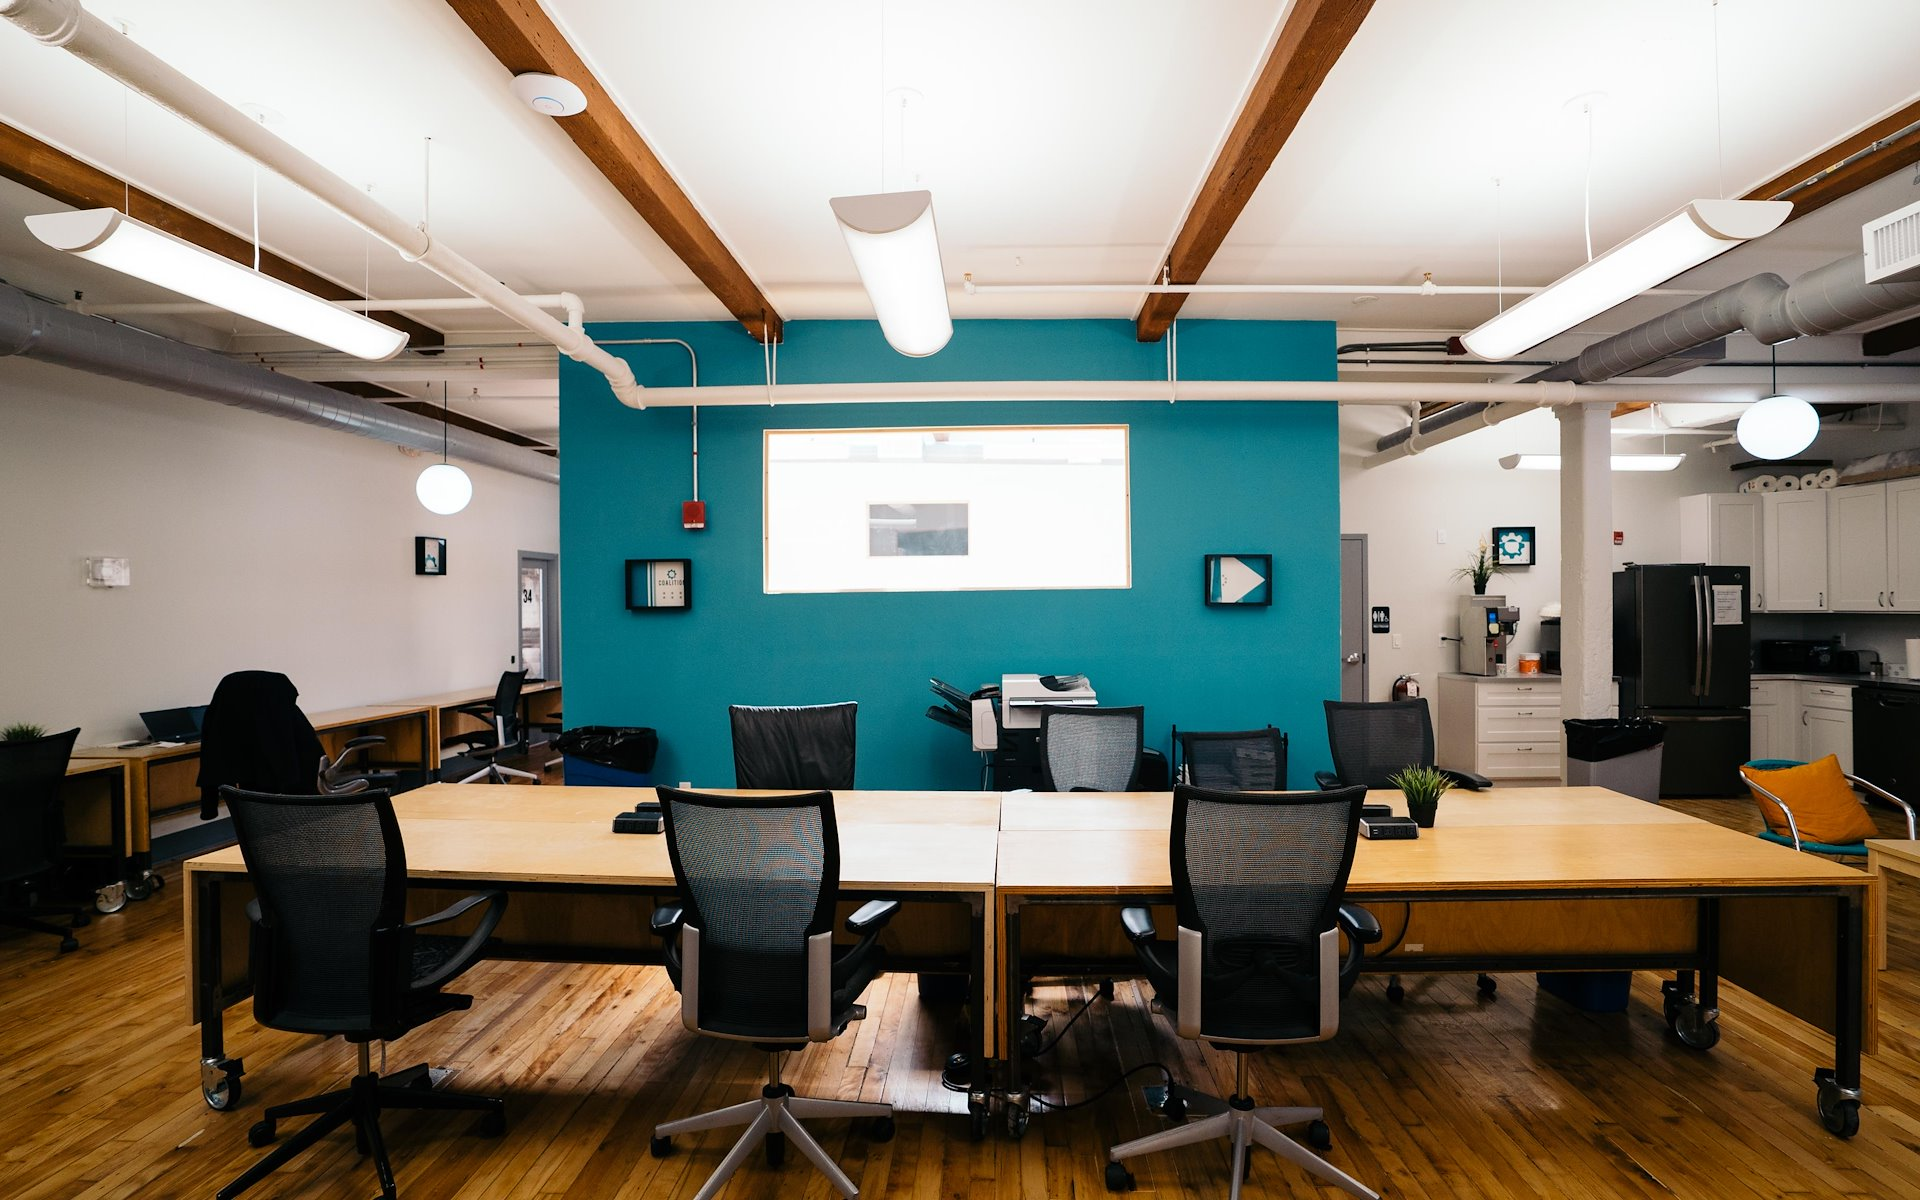 Coalition: Boston - Dedicated Desks in Shared Office